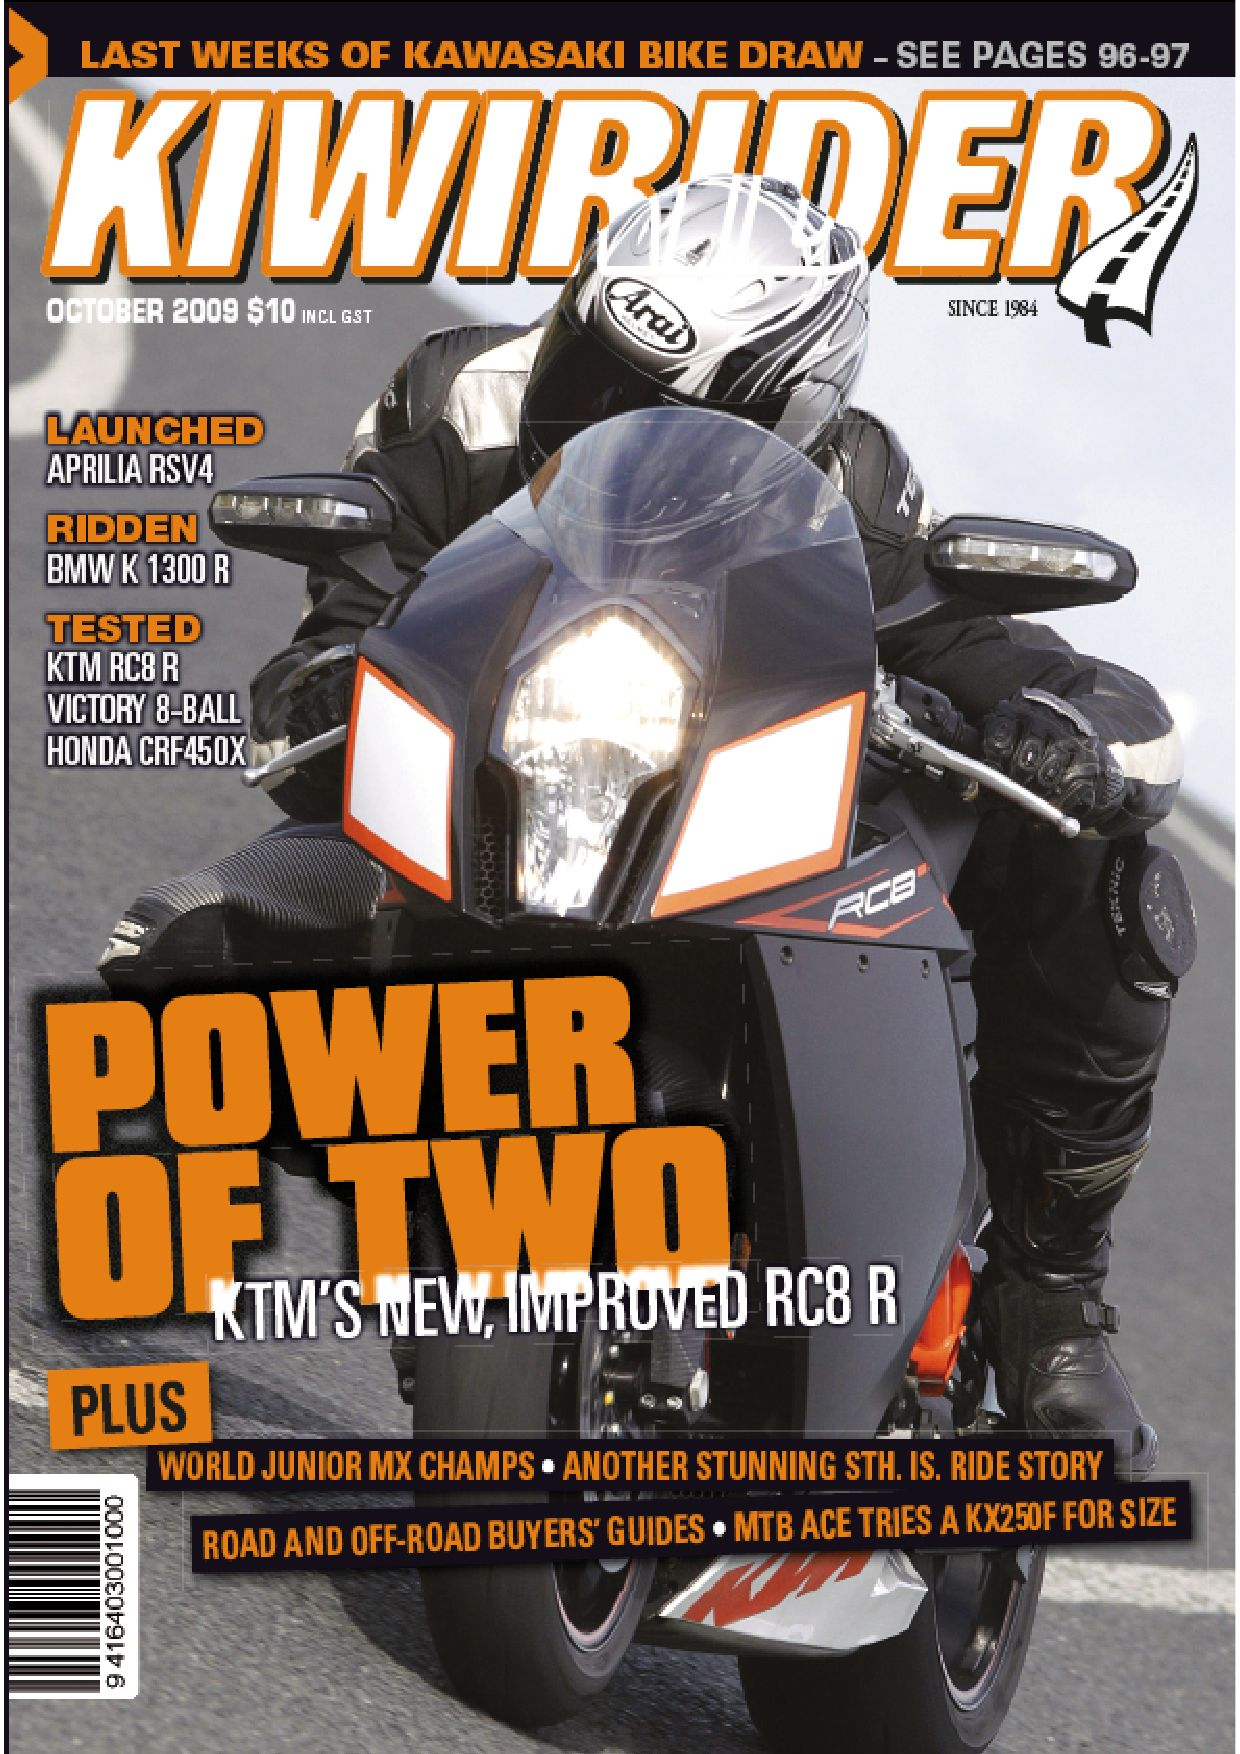 Kiwirider October 09 By Kiwi Rider Magazine Issuu